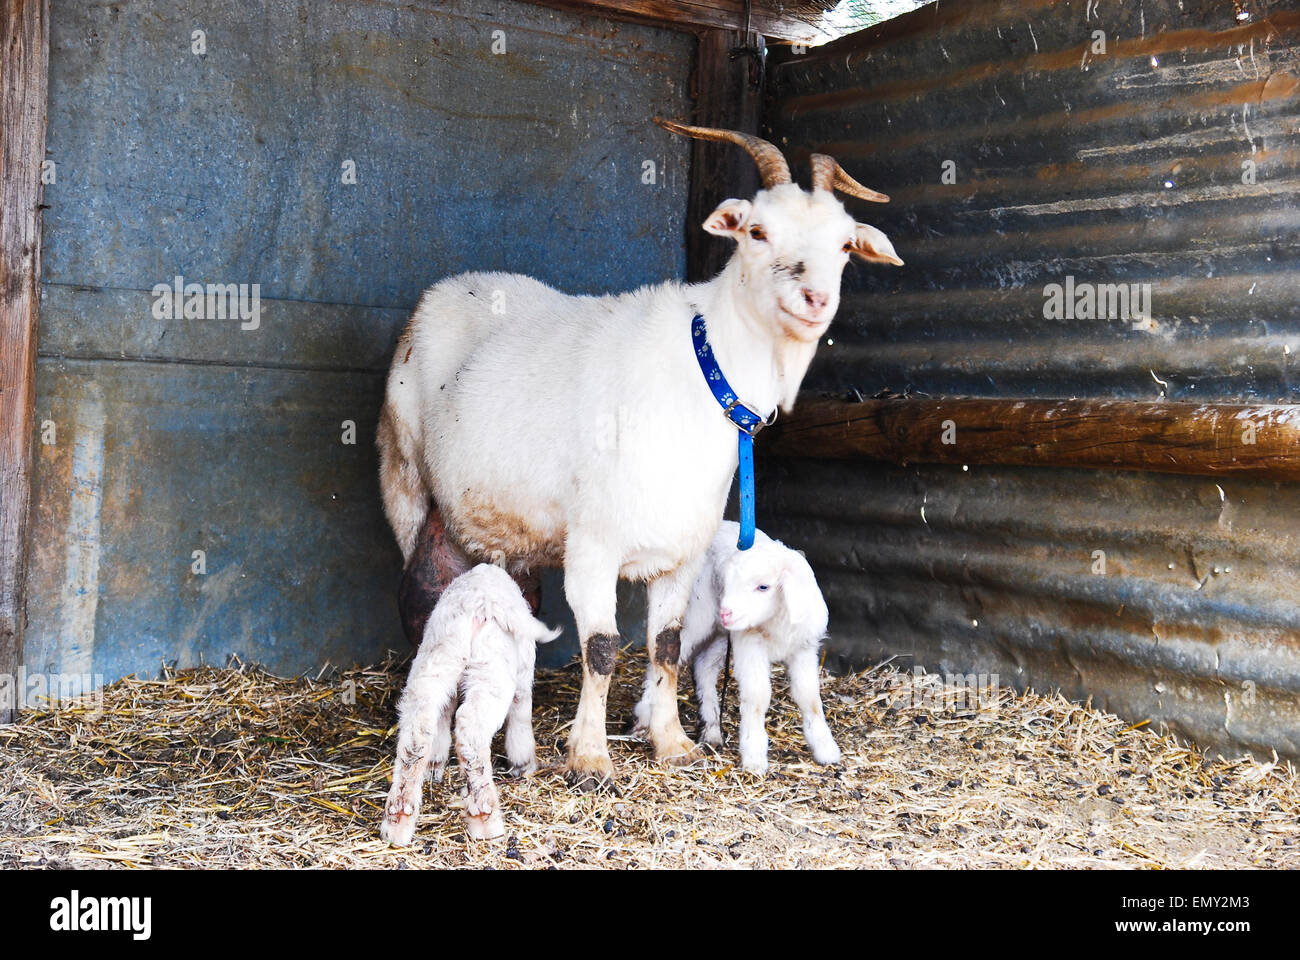 Nanny goat with twin kids in a barn - Stock Image